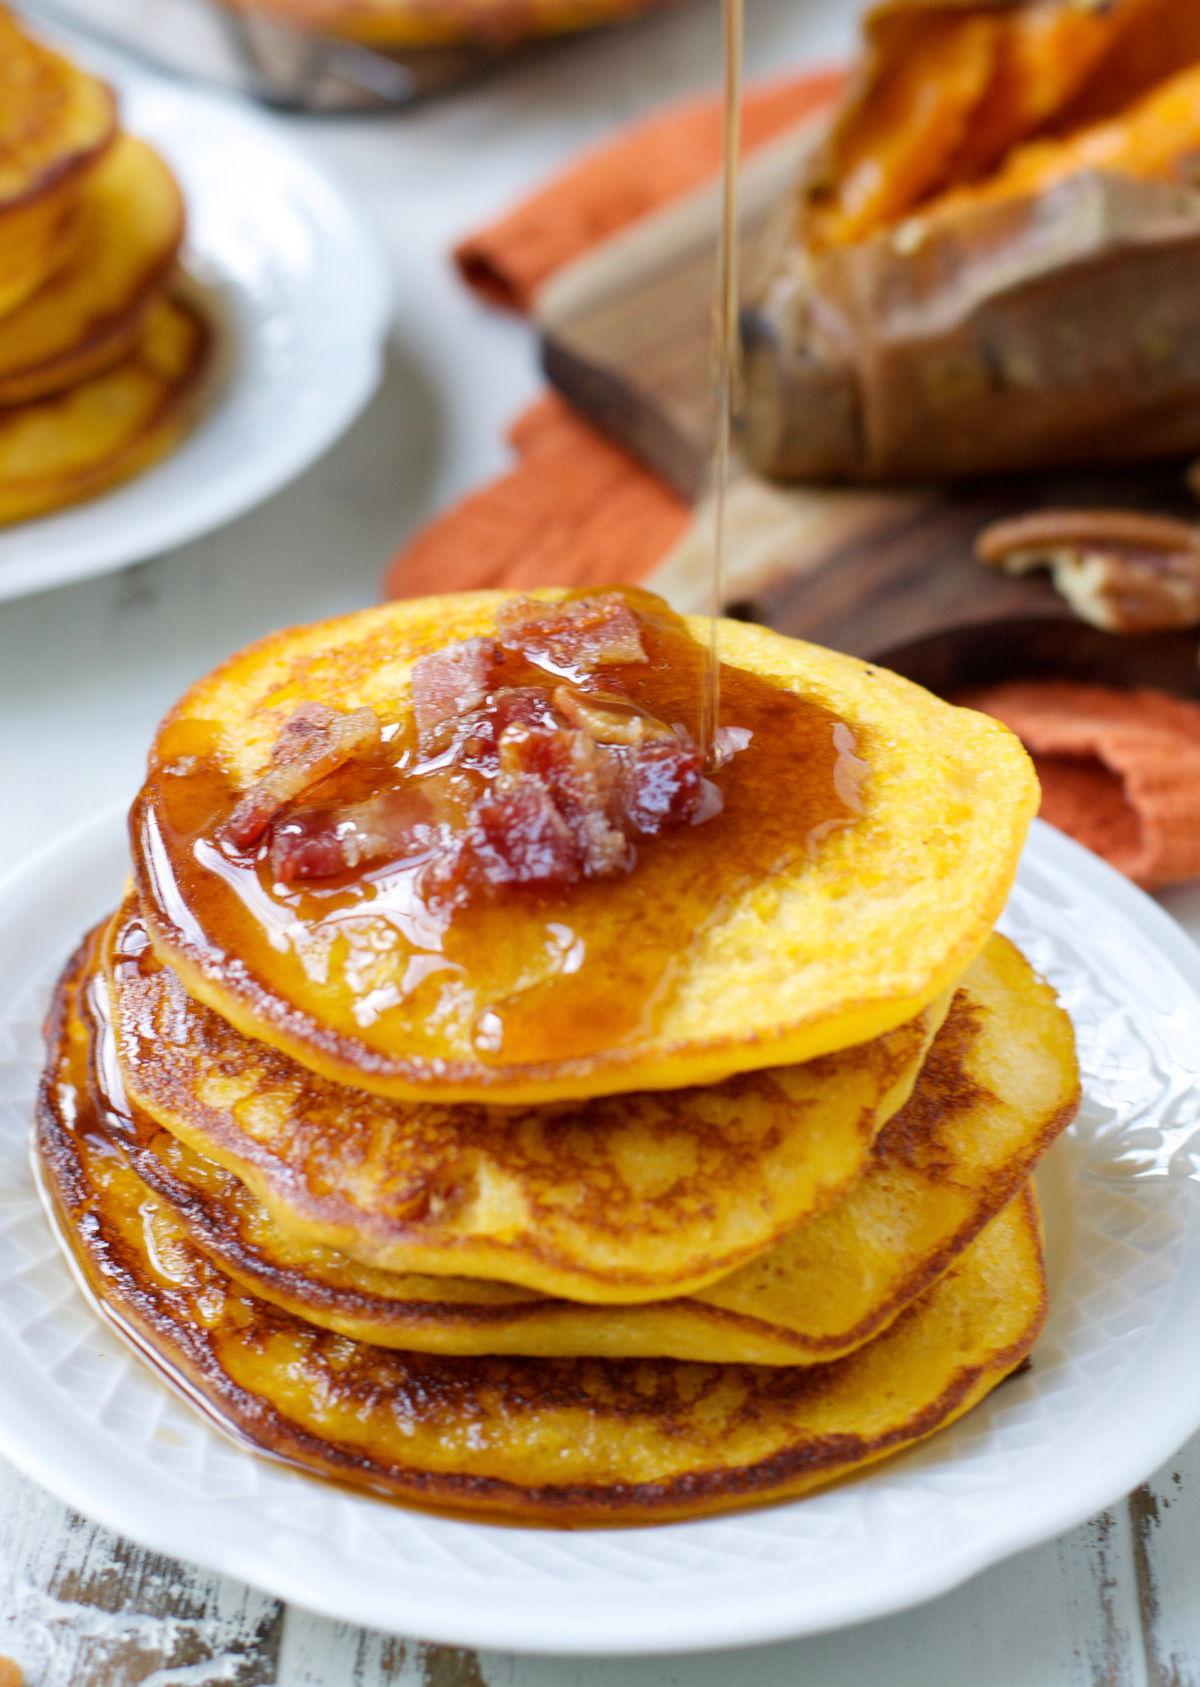 maple syrup being drizzled onto a stack of sweet potato bacon pancakes